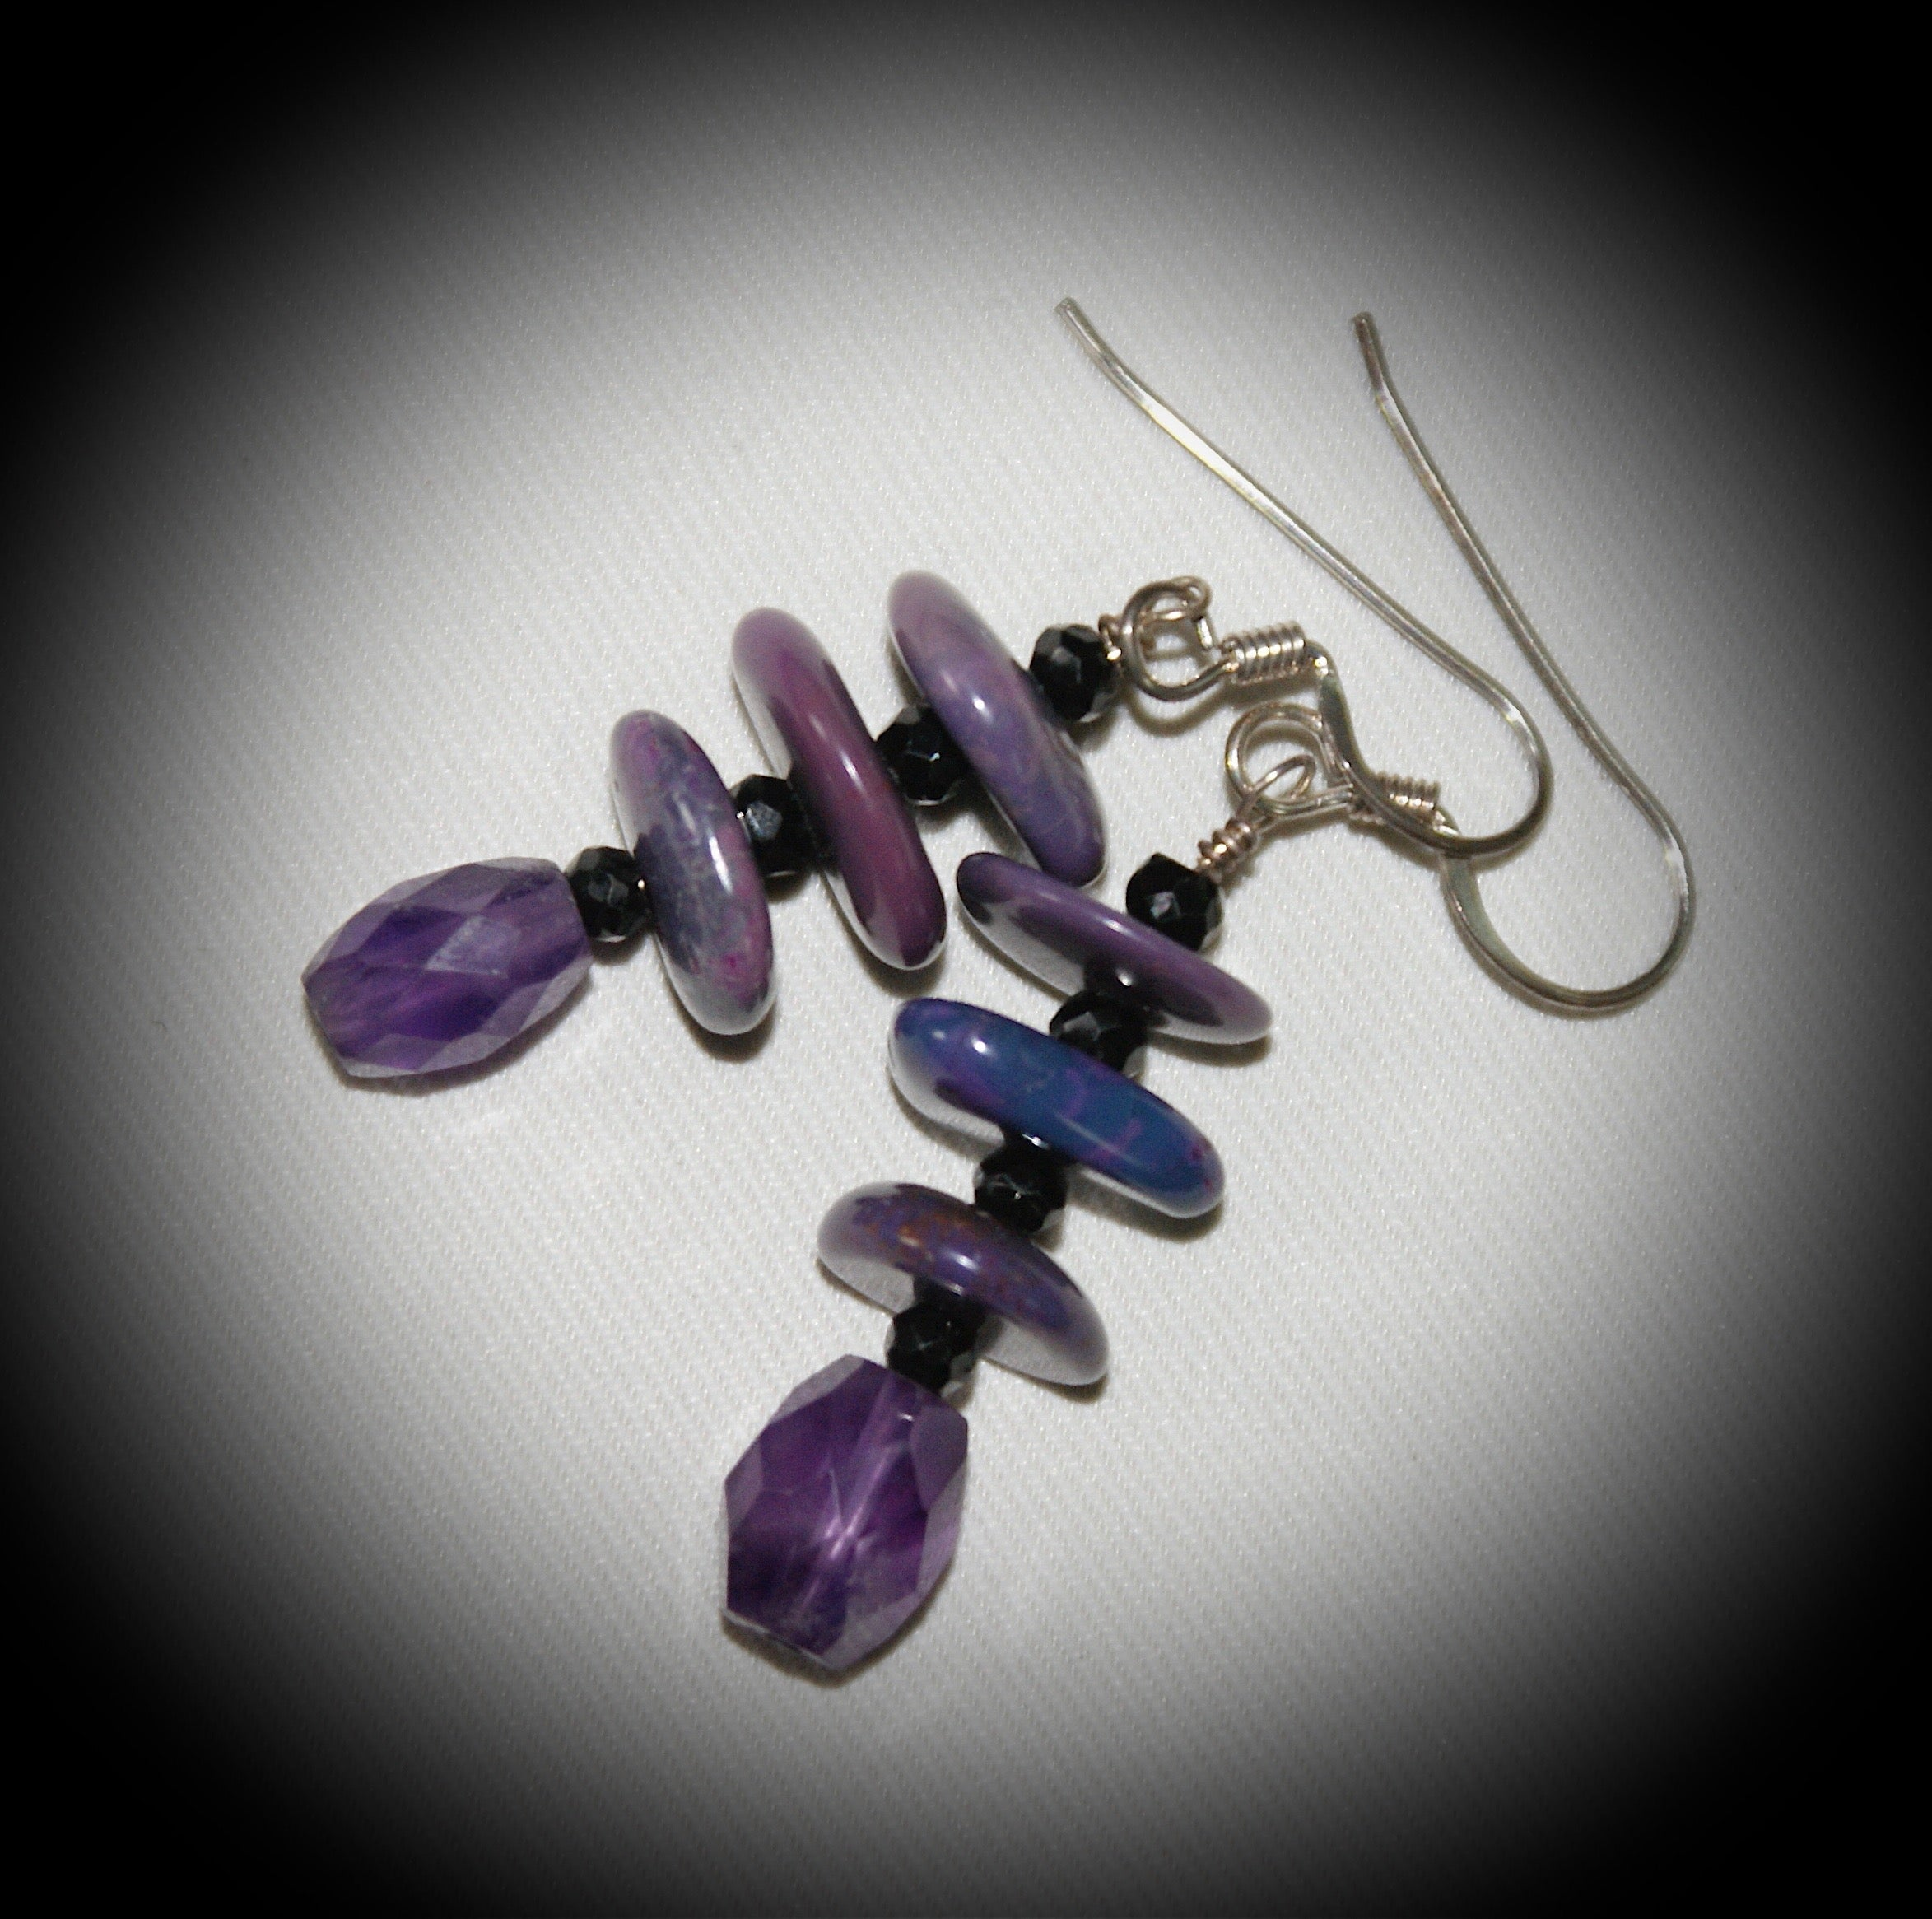 Purple Turquoise and Jet Necklace with Earrings